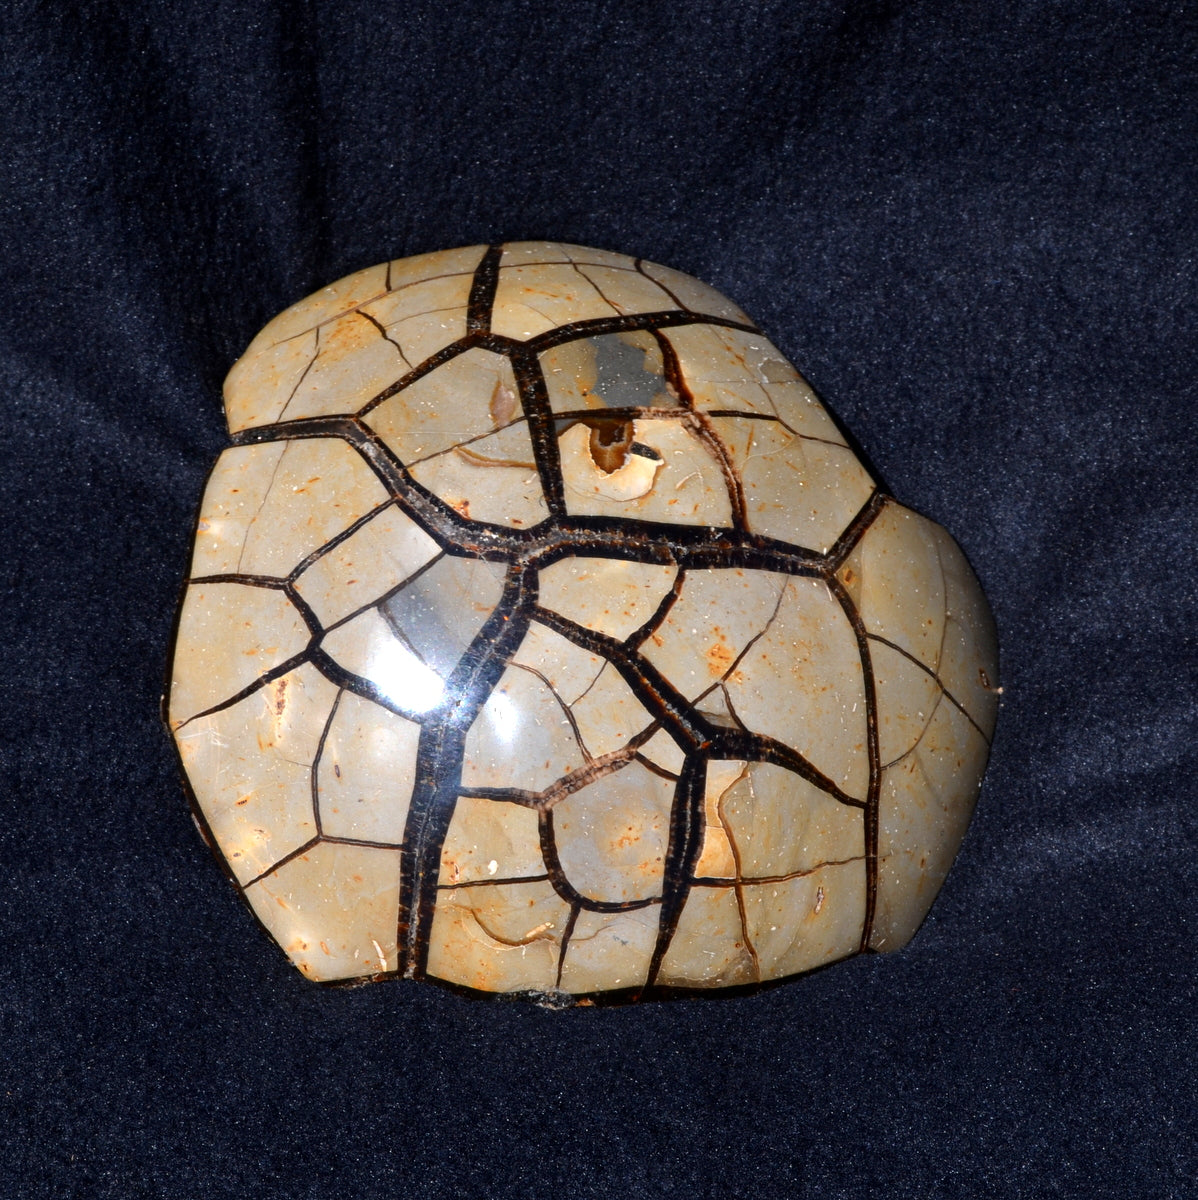 Septarian Geode Dragon Stone XXXL Drusy Sphere - Shop Now at Illiom Crystals - We have Afterpay!